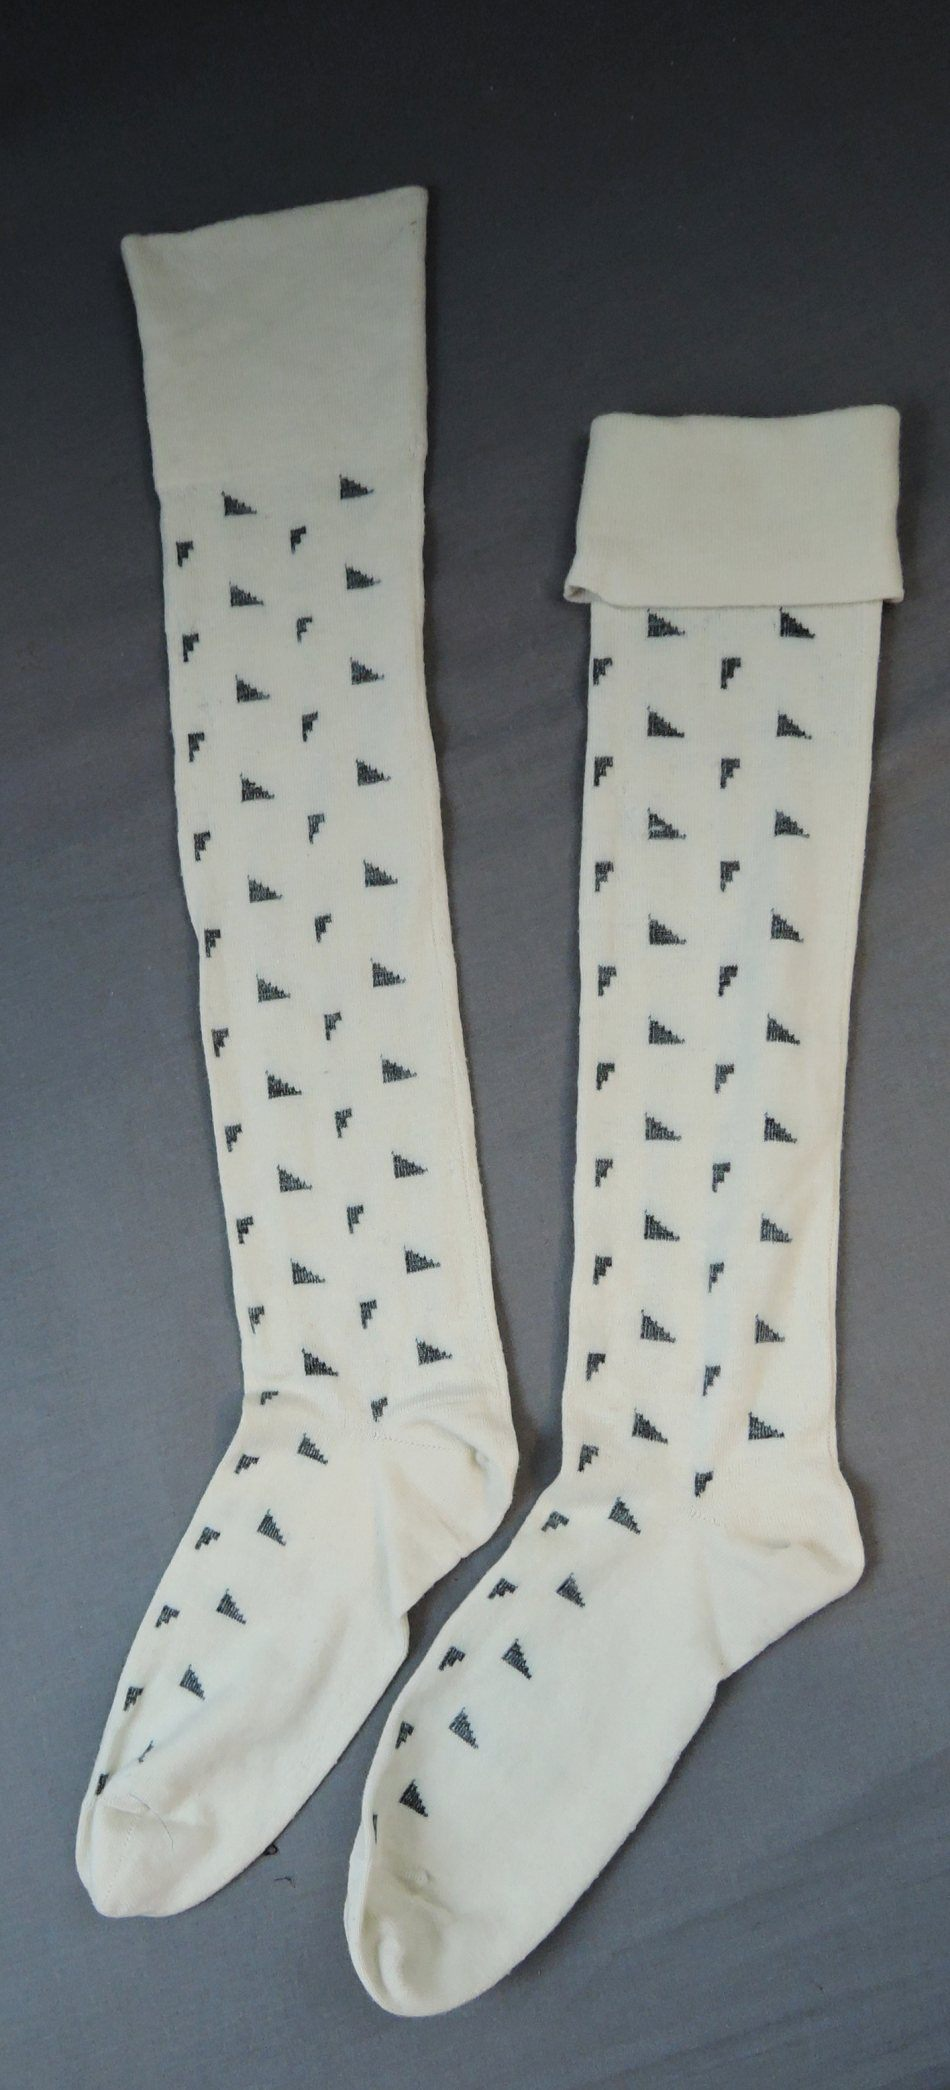 Vintage Seamed Wool Stockings, 1920s White & Black, size 10 foot